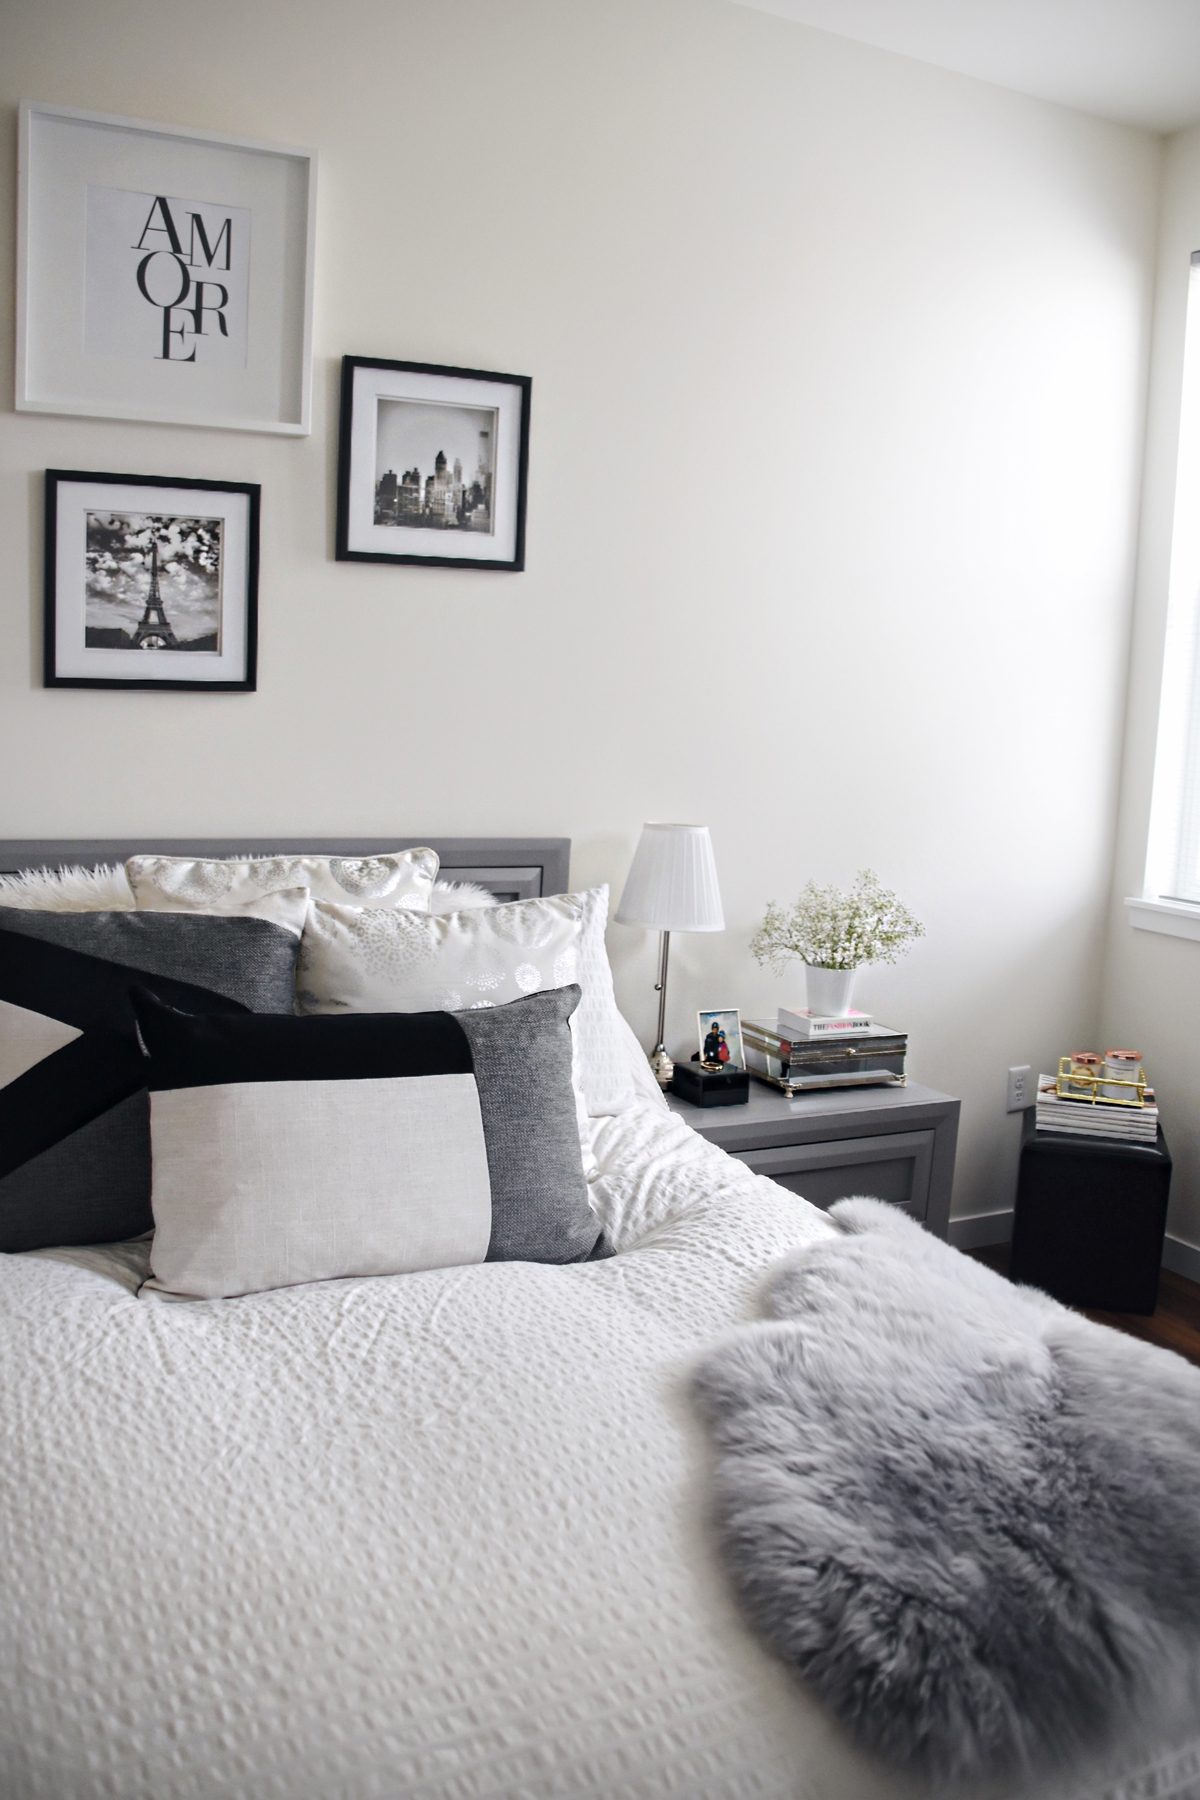 Bed room decoration with Article Velu pillow collection, and the Lanna Throw